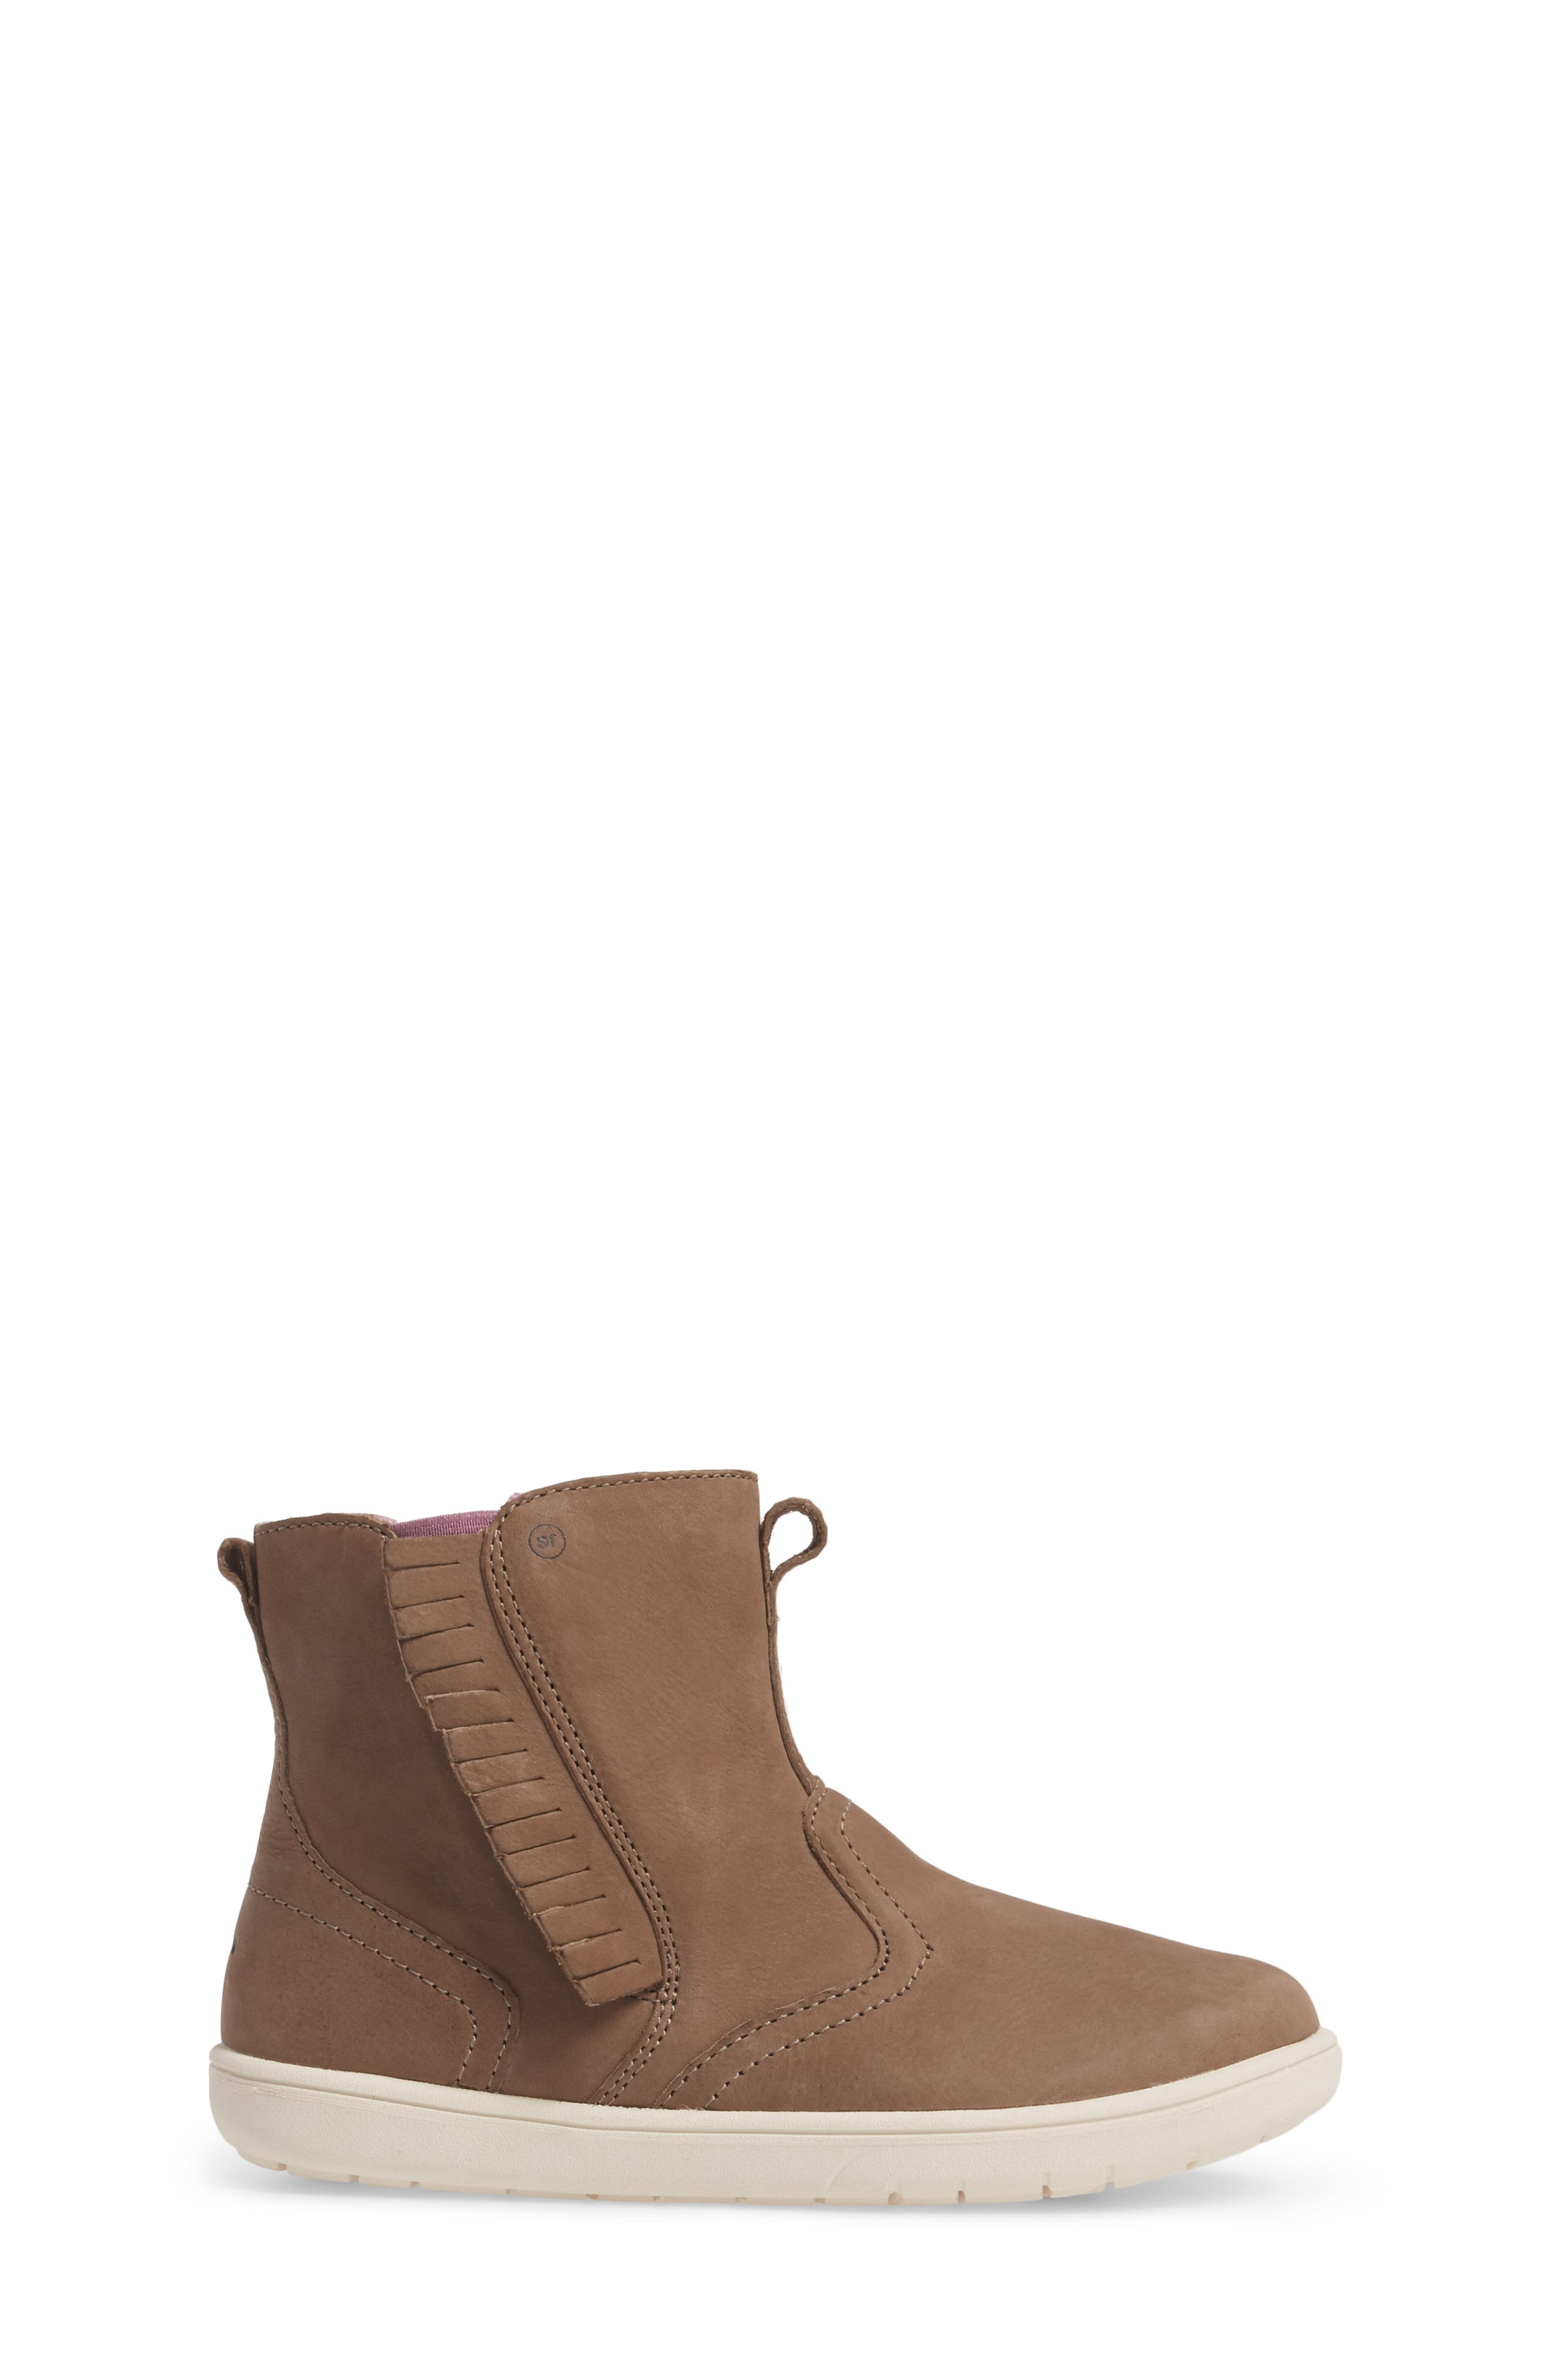 SRtech<sup>™</sup> Maxine Fringed Bootie,                             Alternate thumbnail 3, color,